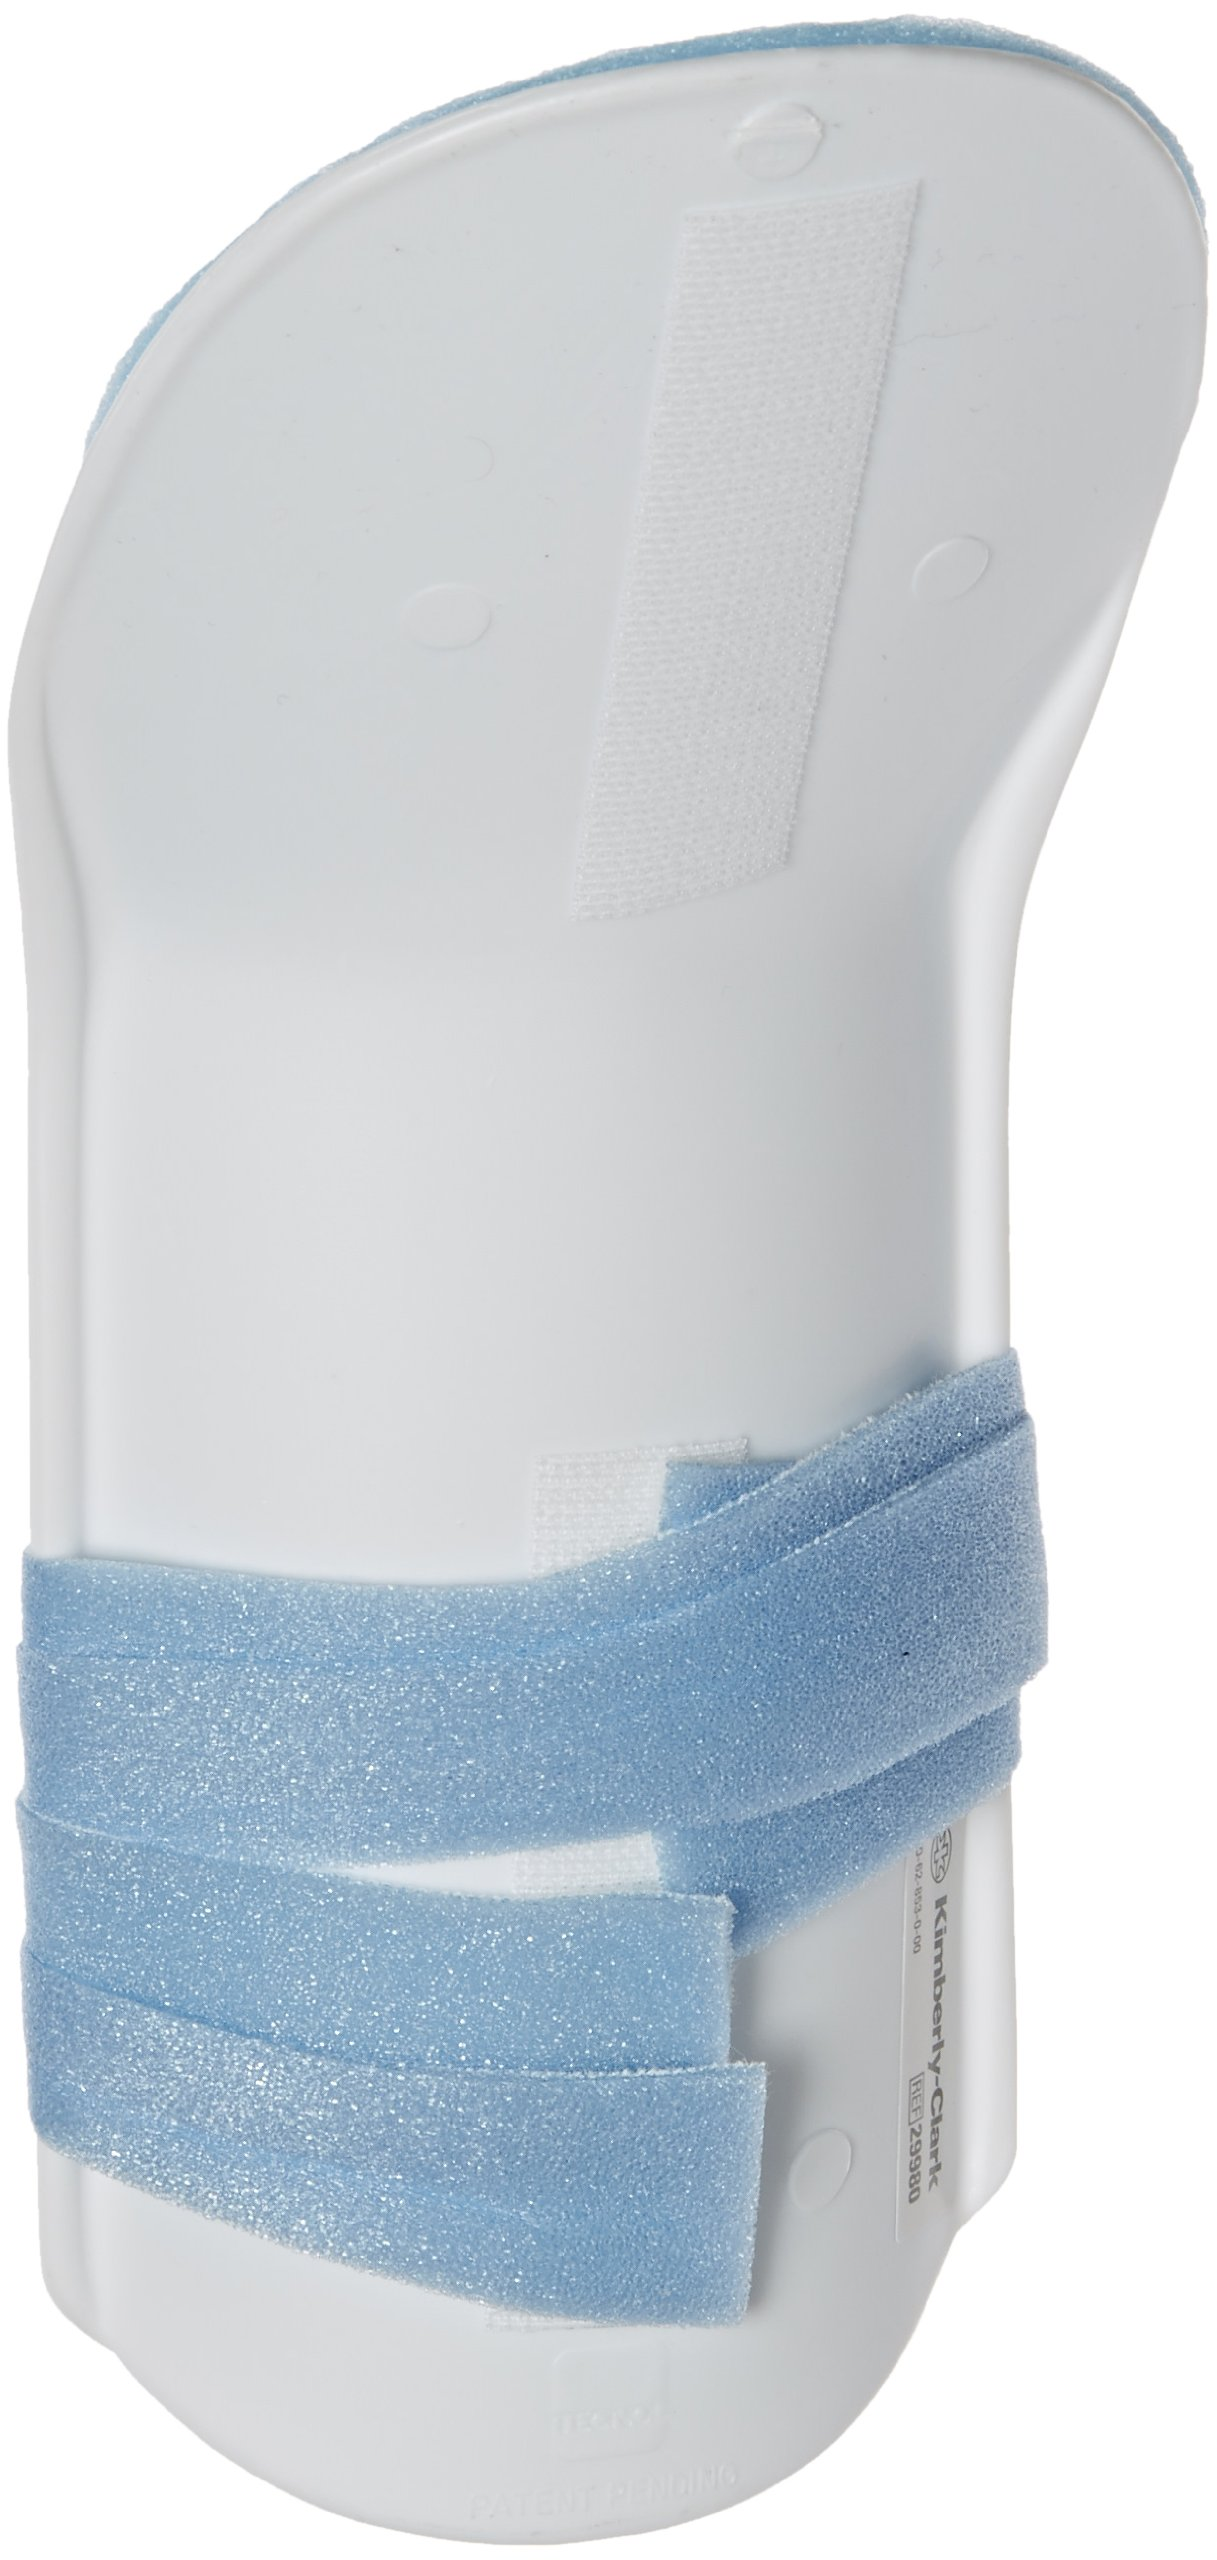 Halyard Health 29980 HAND-AID Arterial Wrist Support, I.V. Therapy, Adult (Case of 20) by Halyard Health